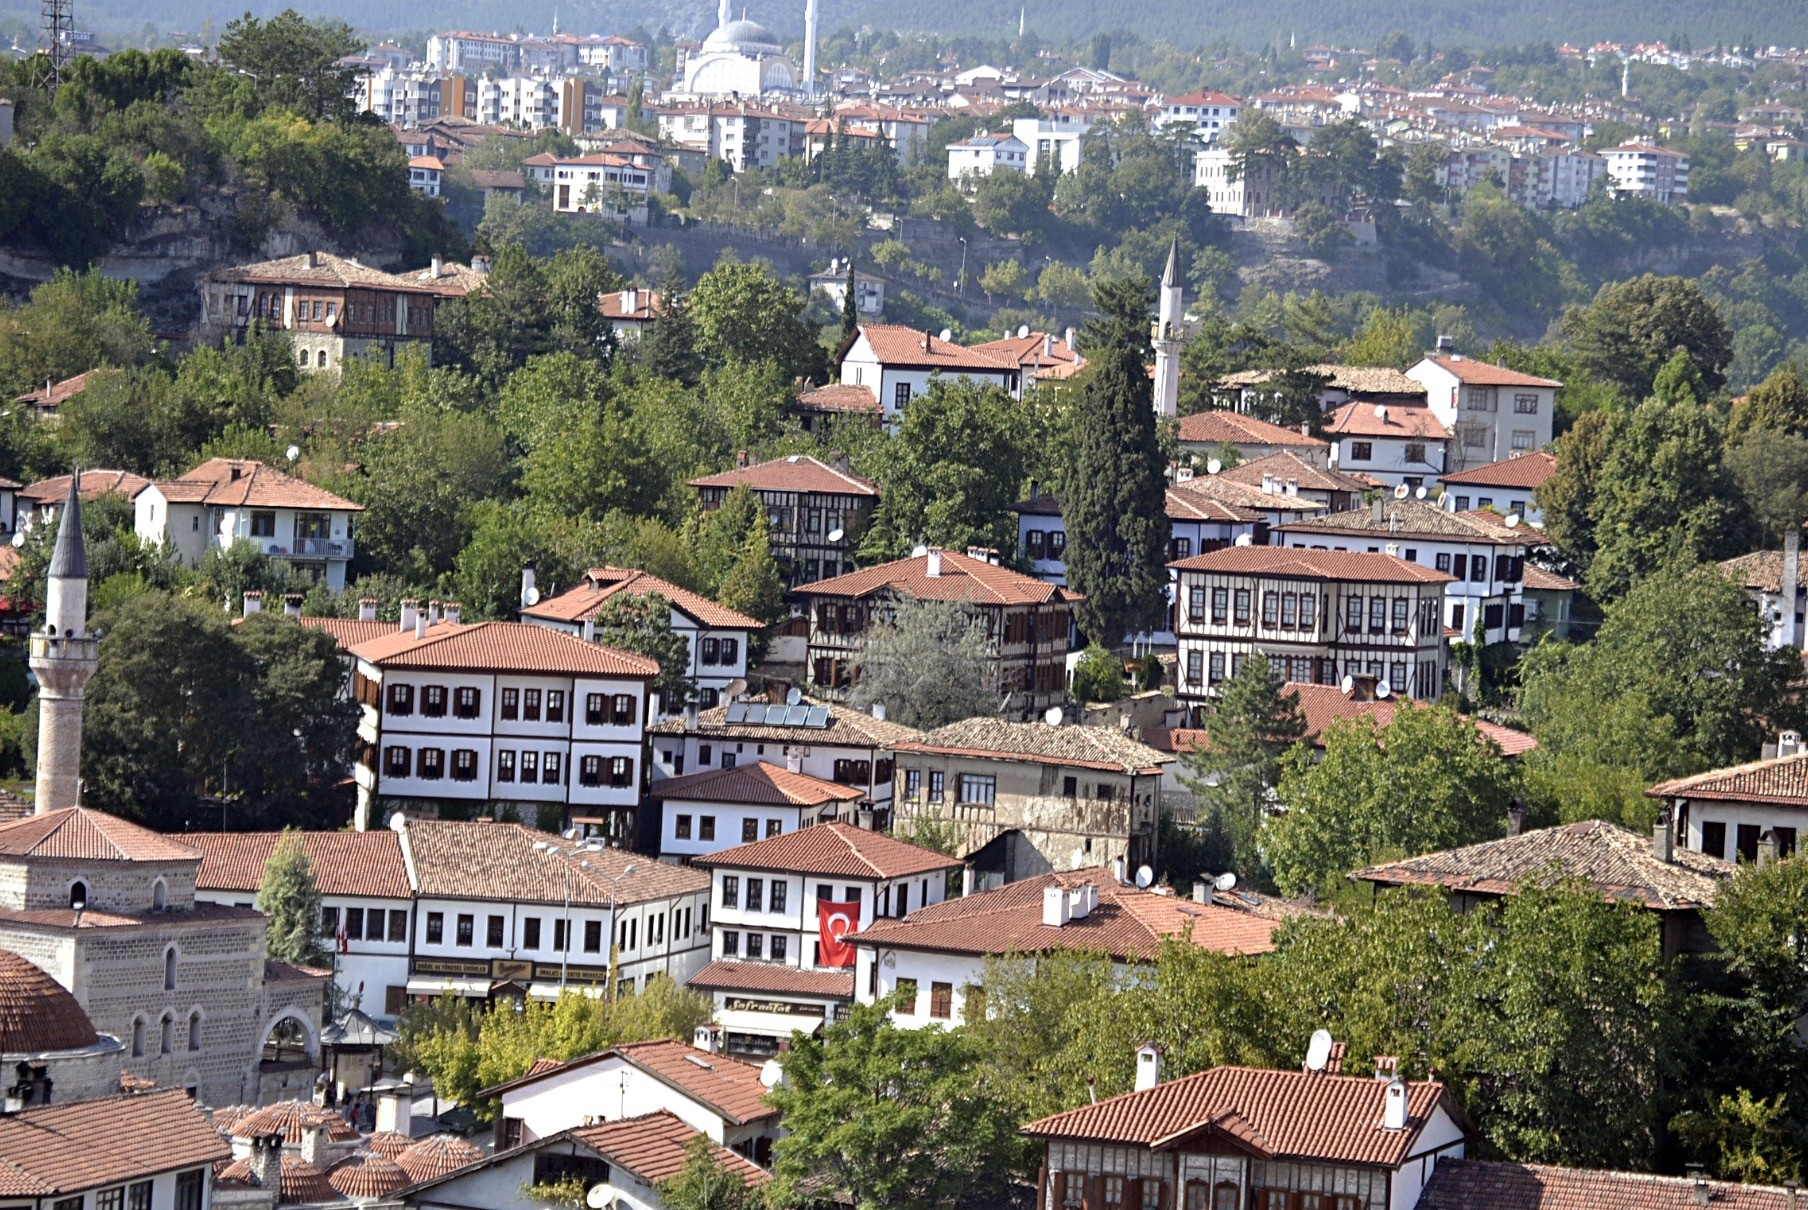 The Golden Safran Film Festival is held in Safranbolu district, which is registered by UNESCO for its unique architecture.